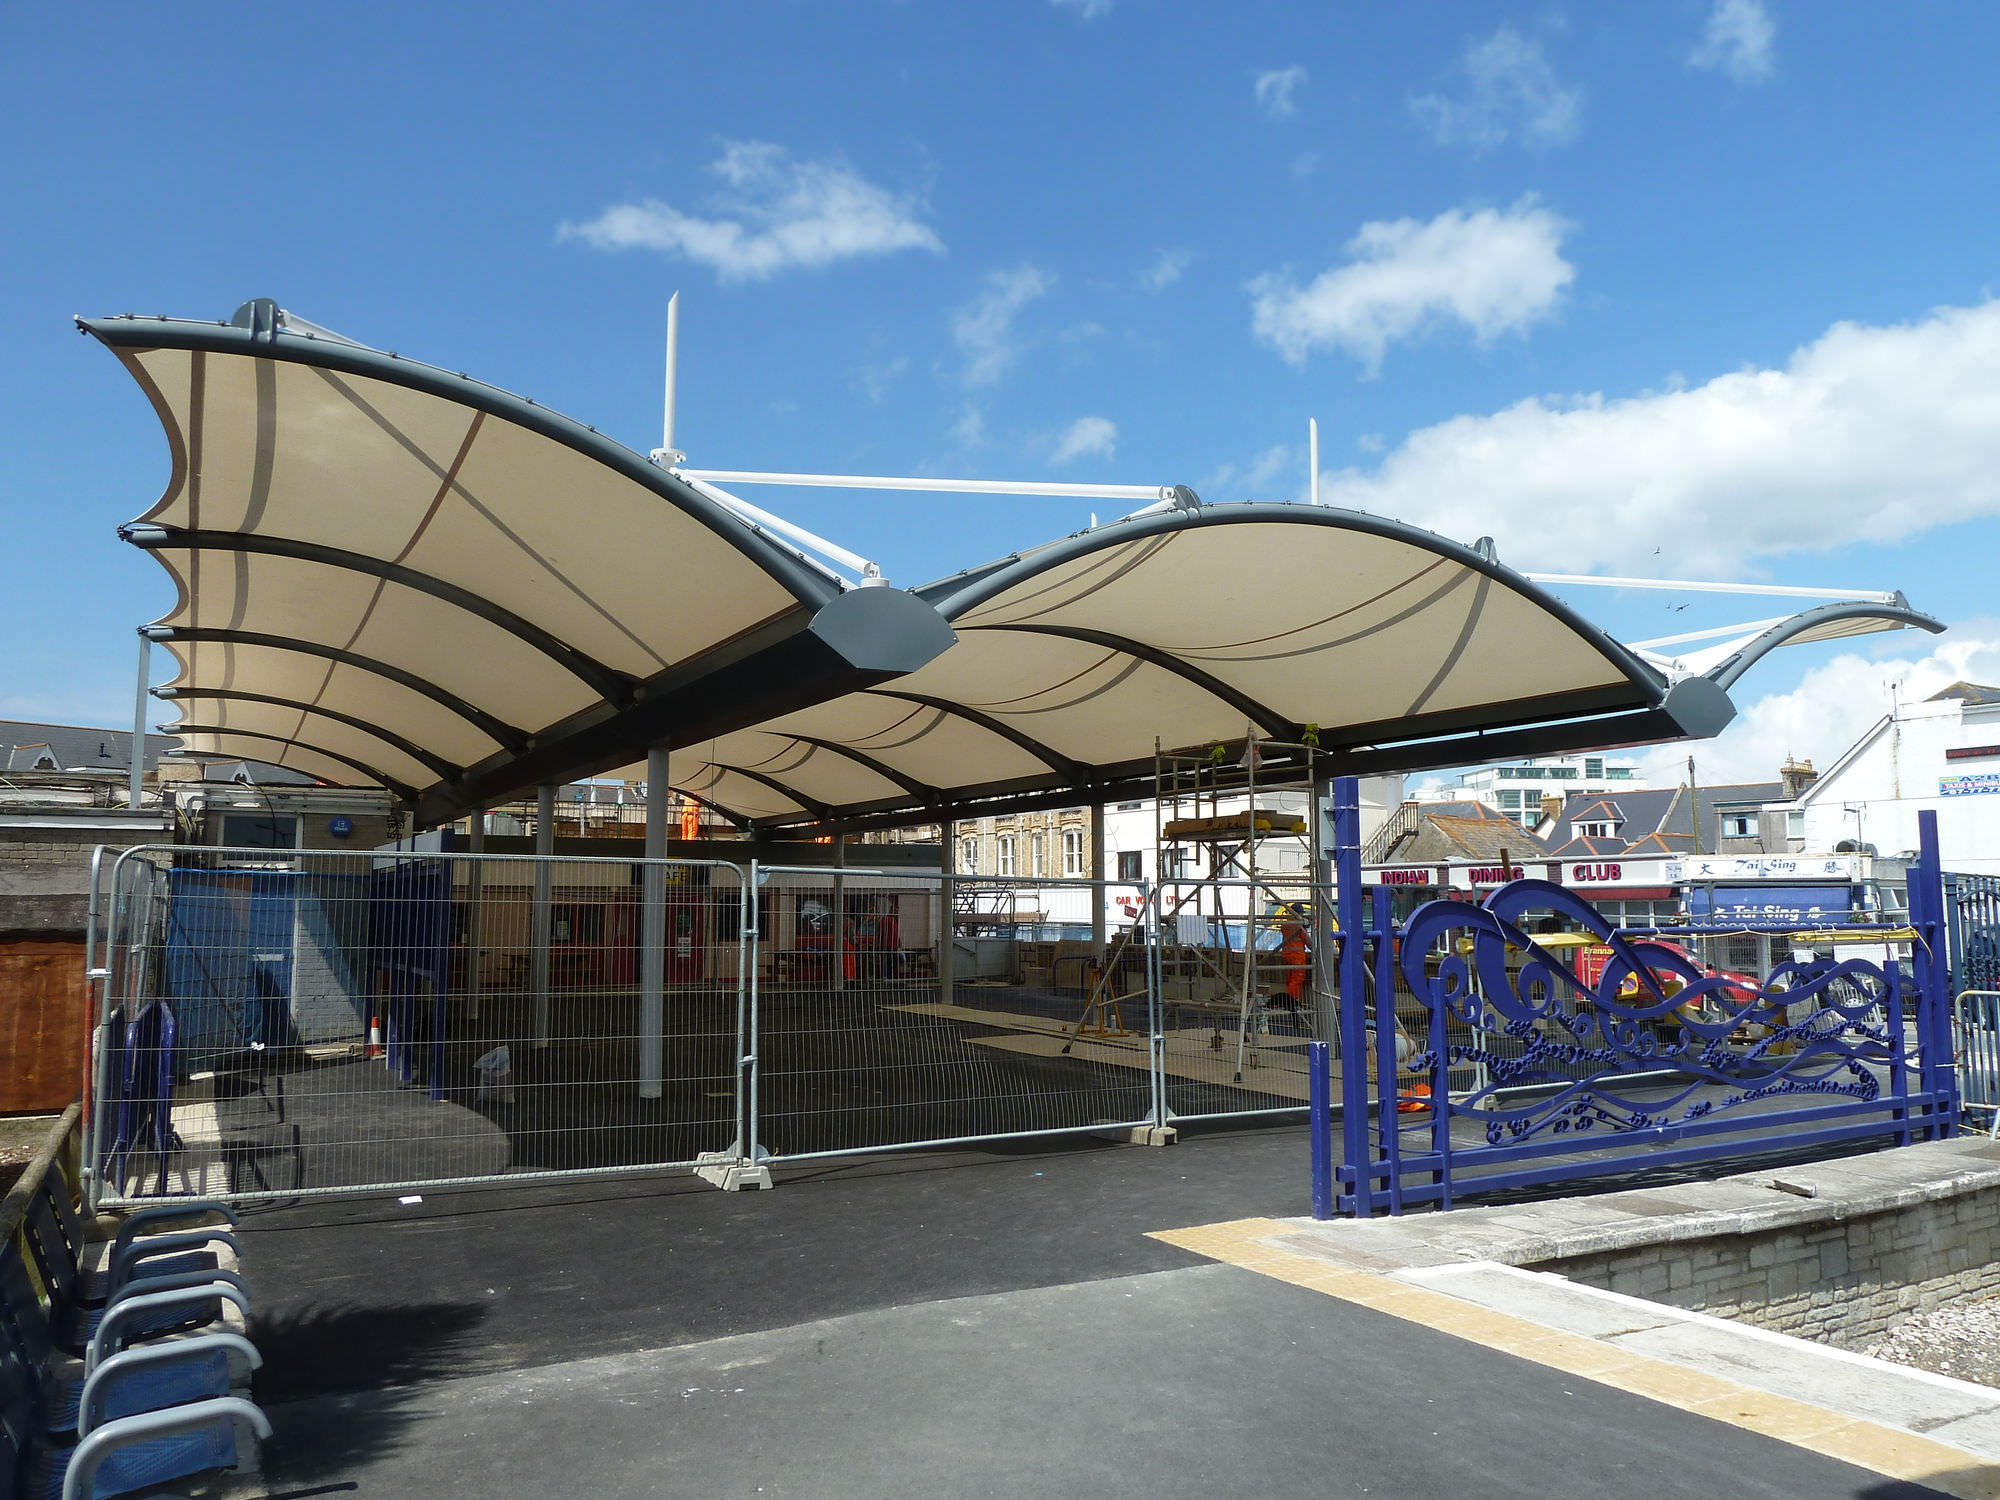 tensile canopy metal frame supported for public spaces with glass fiber cone newquay